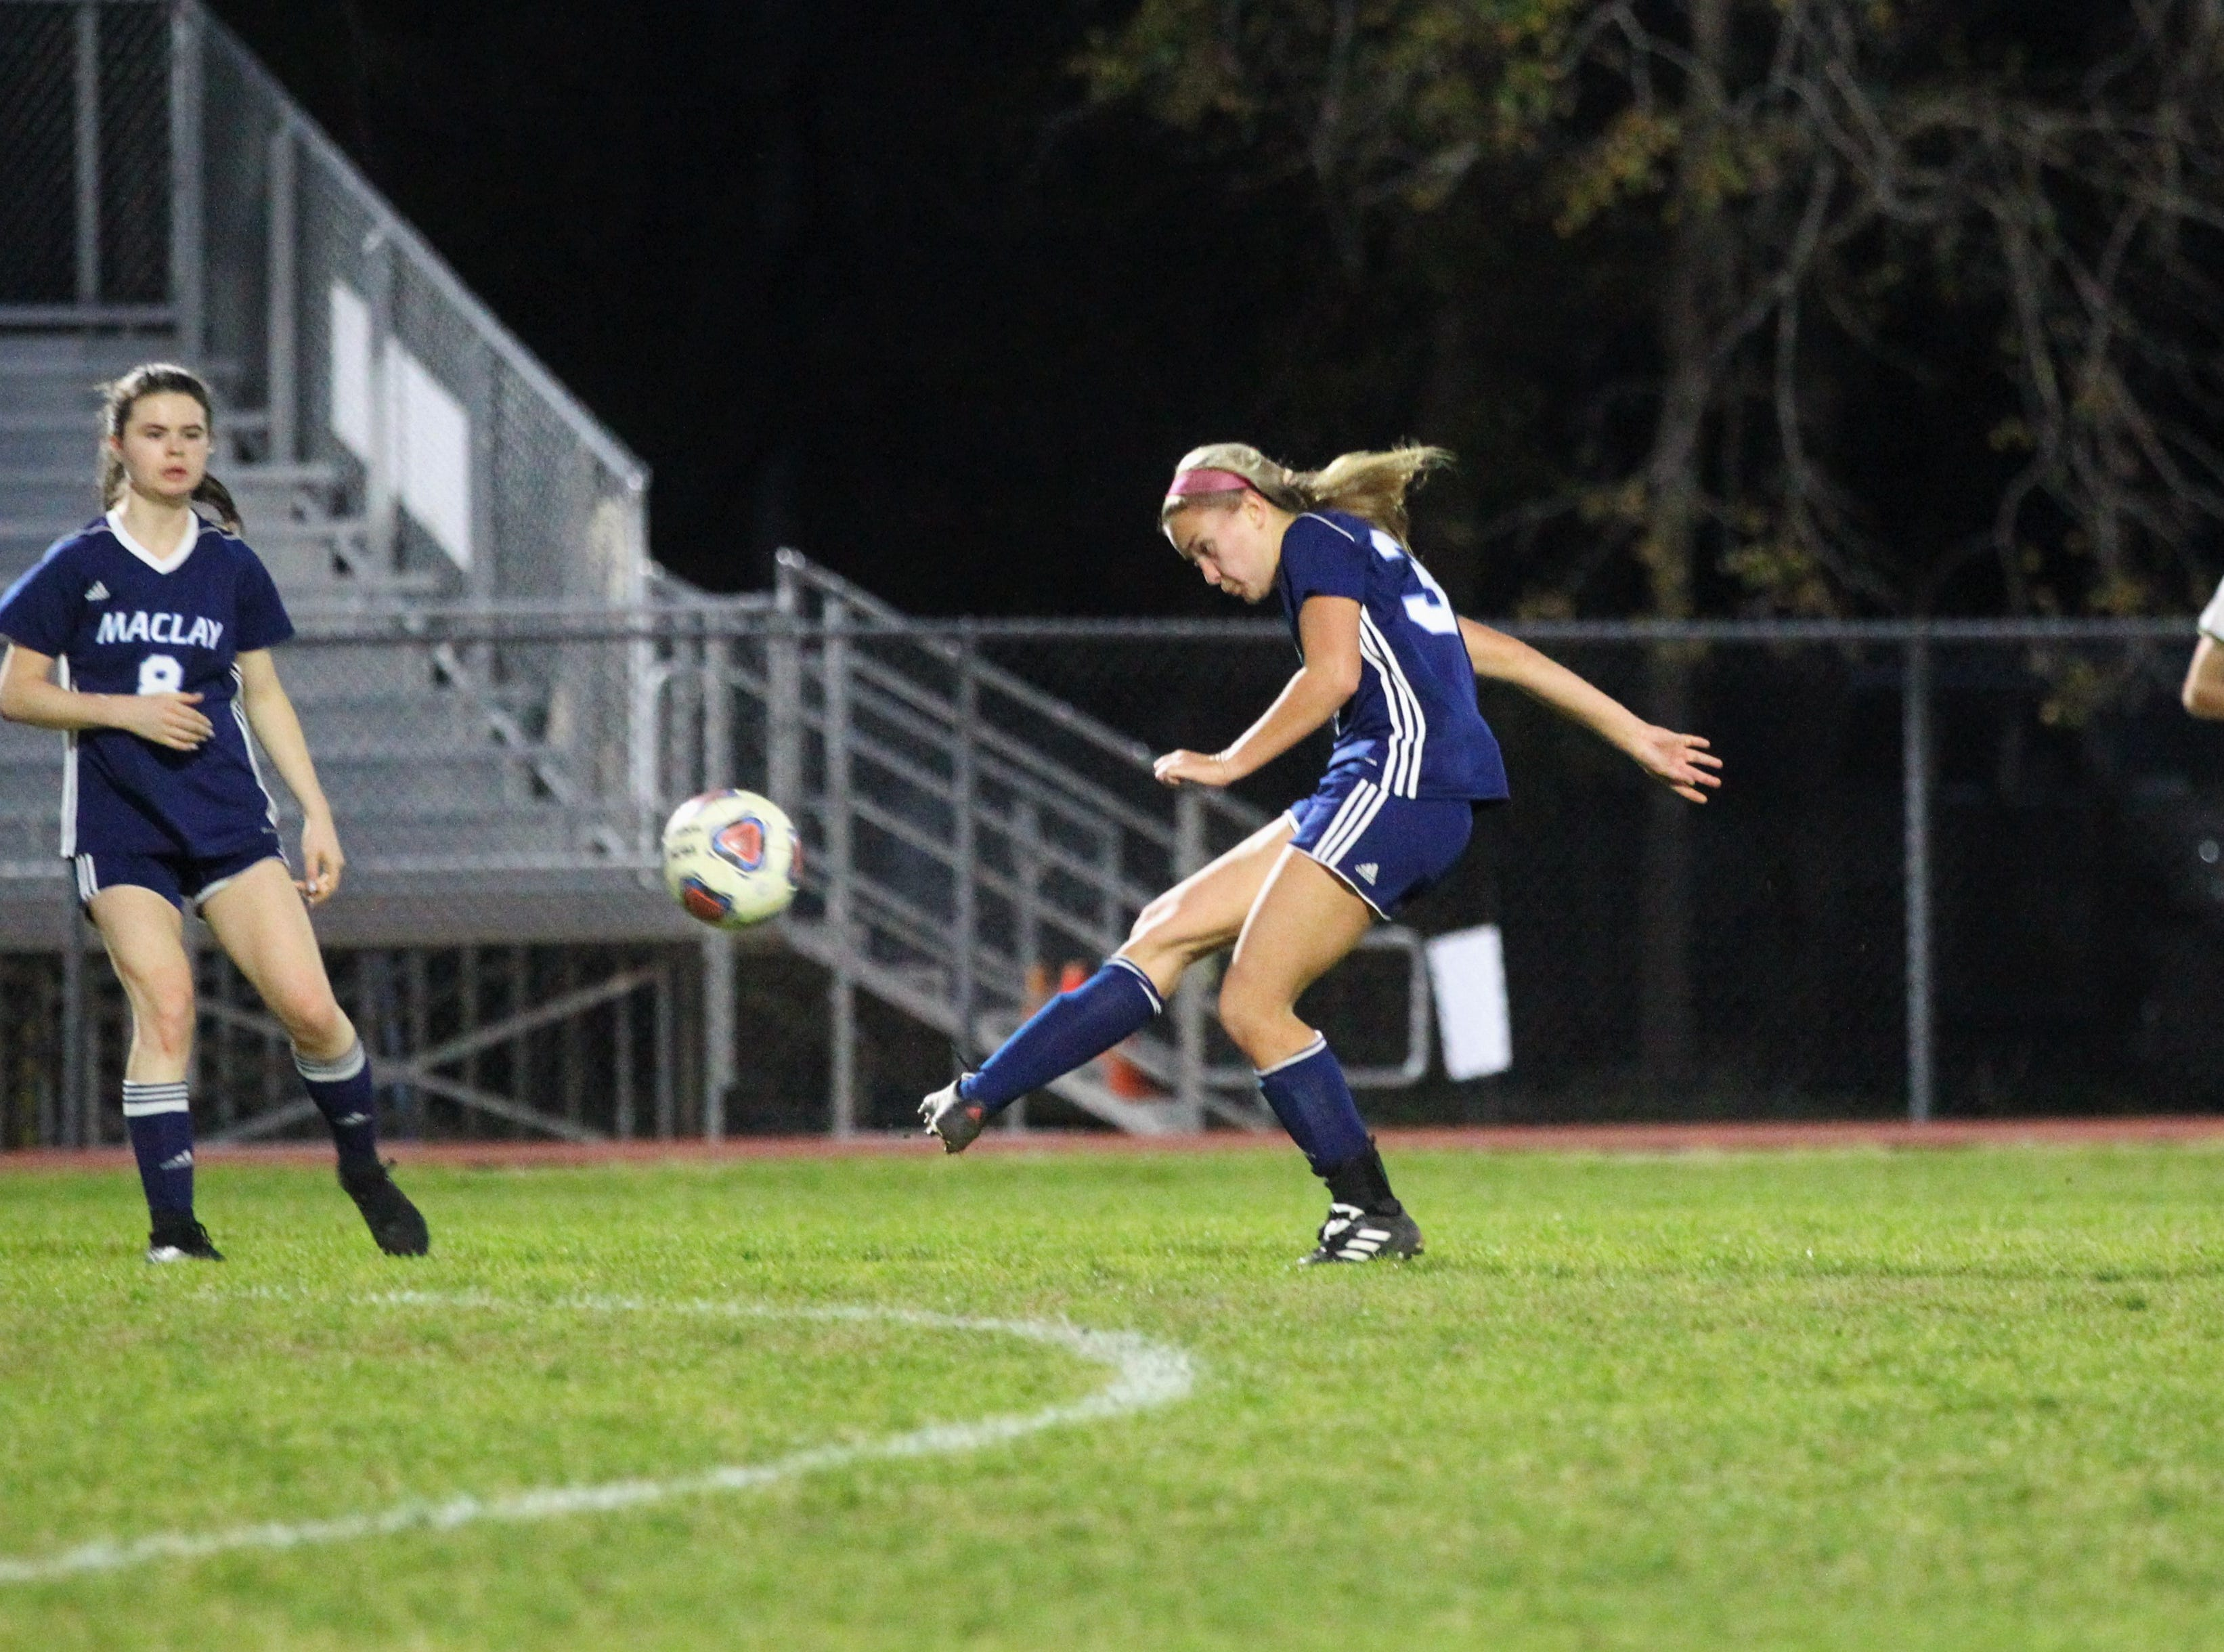 Maclay's Colleen Donahue sends a pass upfield as Maclay's girls soccer team beat St. Joseph Academy 4-0 in a Region 1-1A quarterfinal on Jan. 5, 2019.